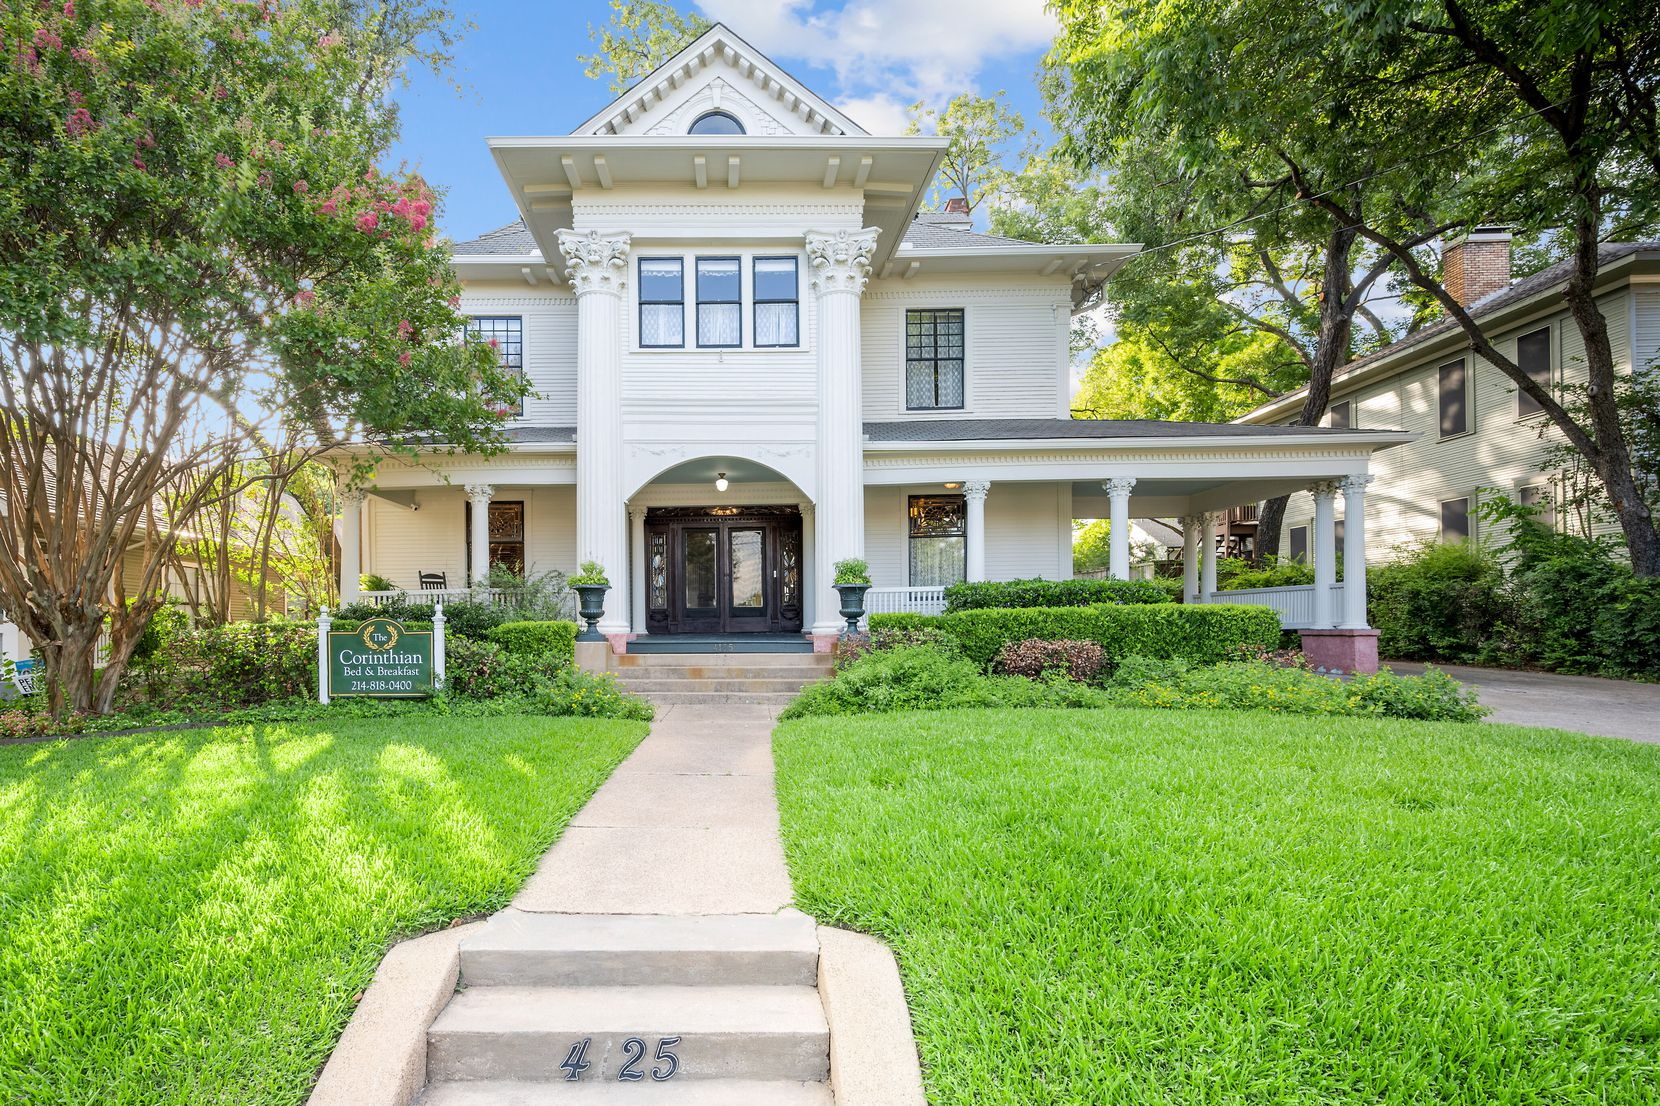 Take a look at the home at 4125 Junius St. in Dallas.